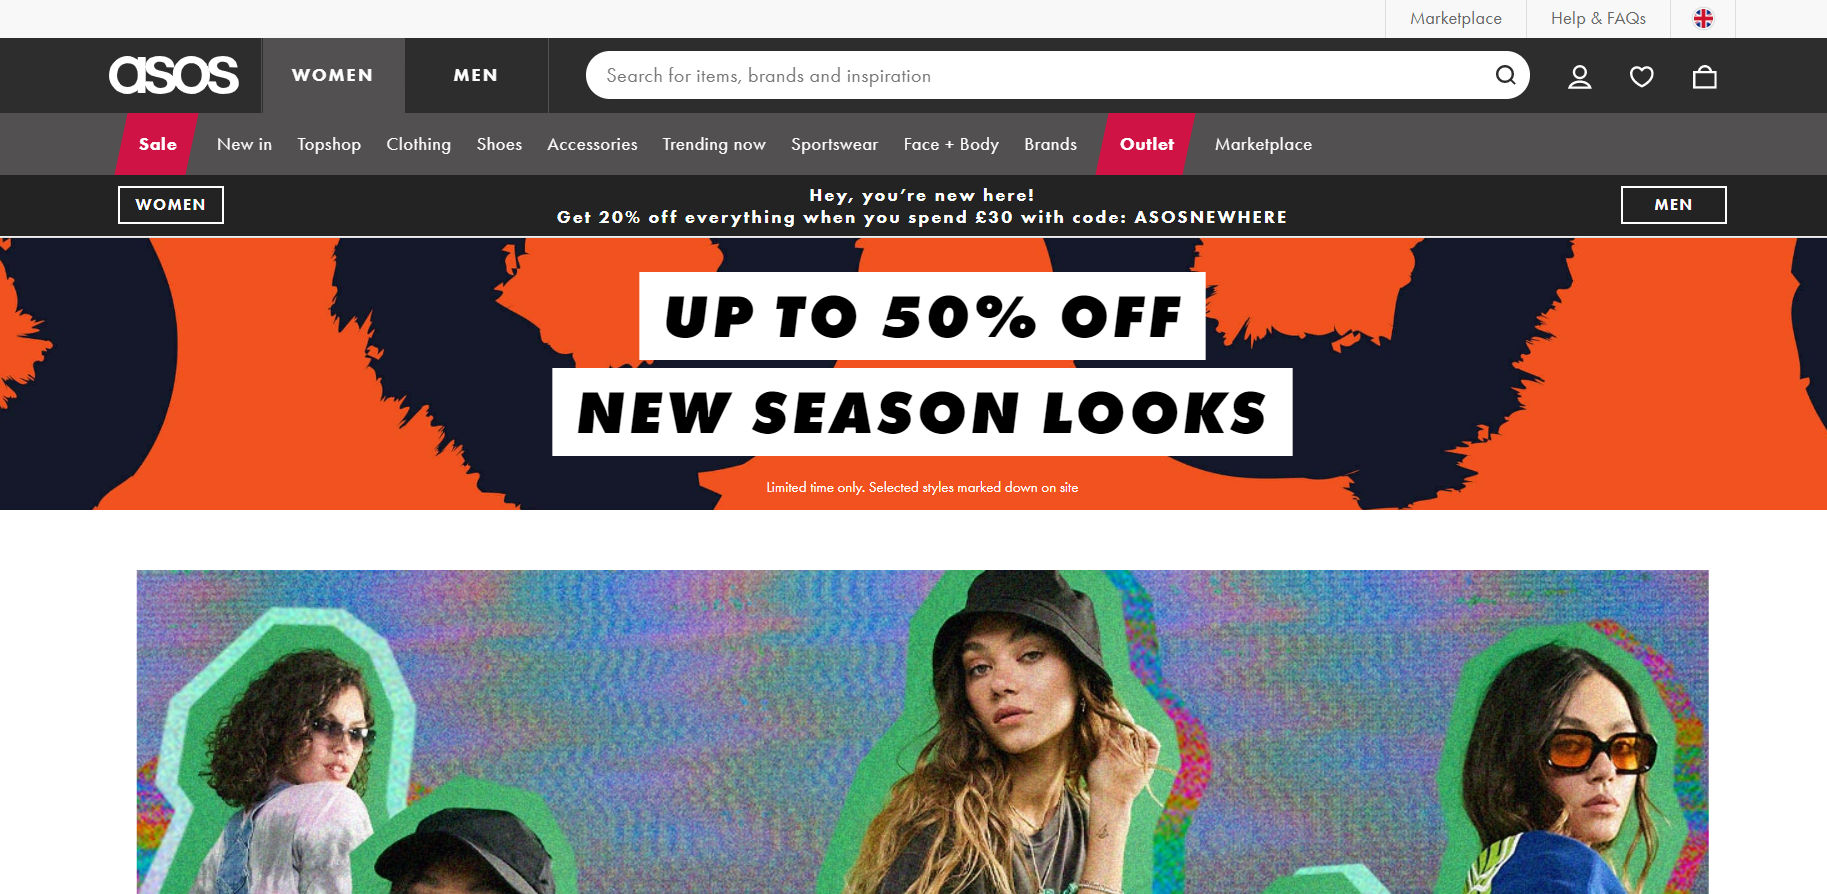 3 eCommerce Marketing Mistakes Not to Repeat